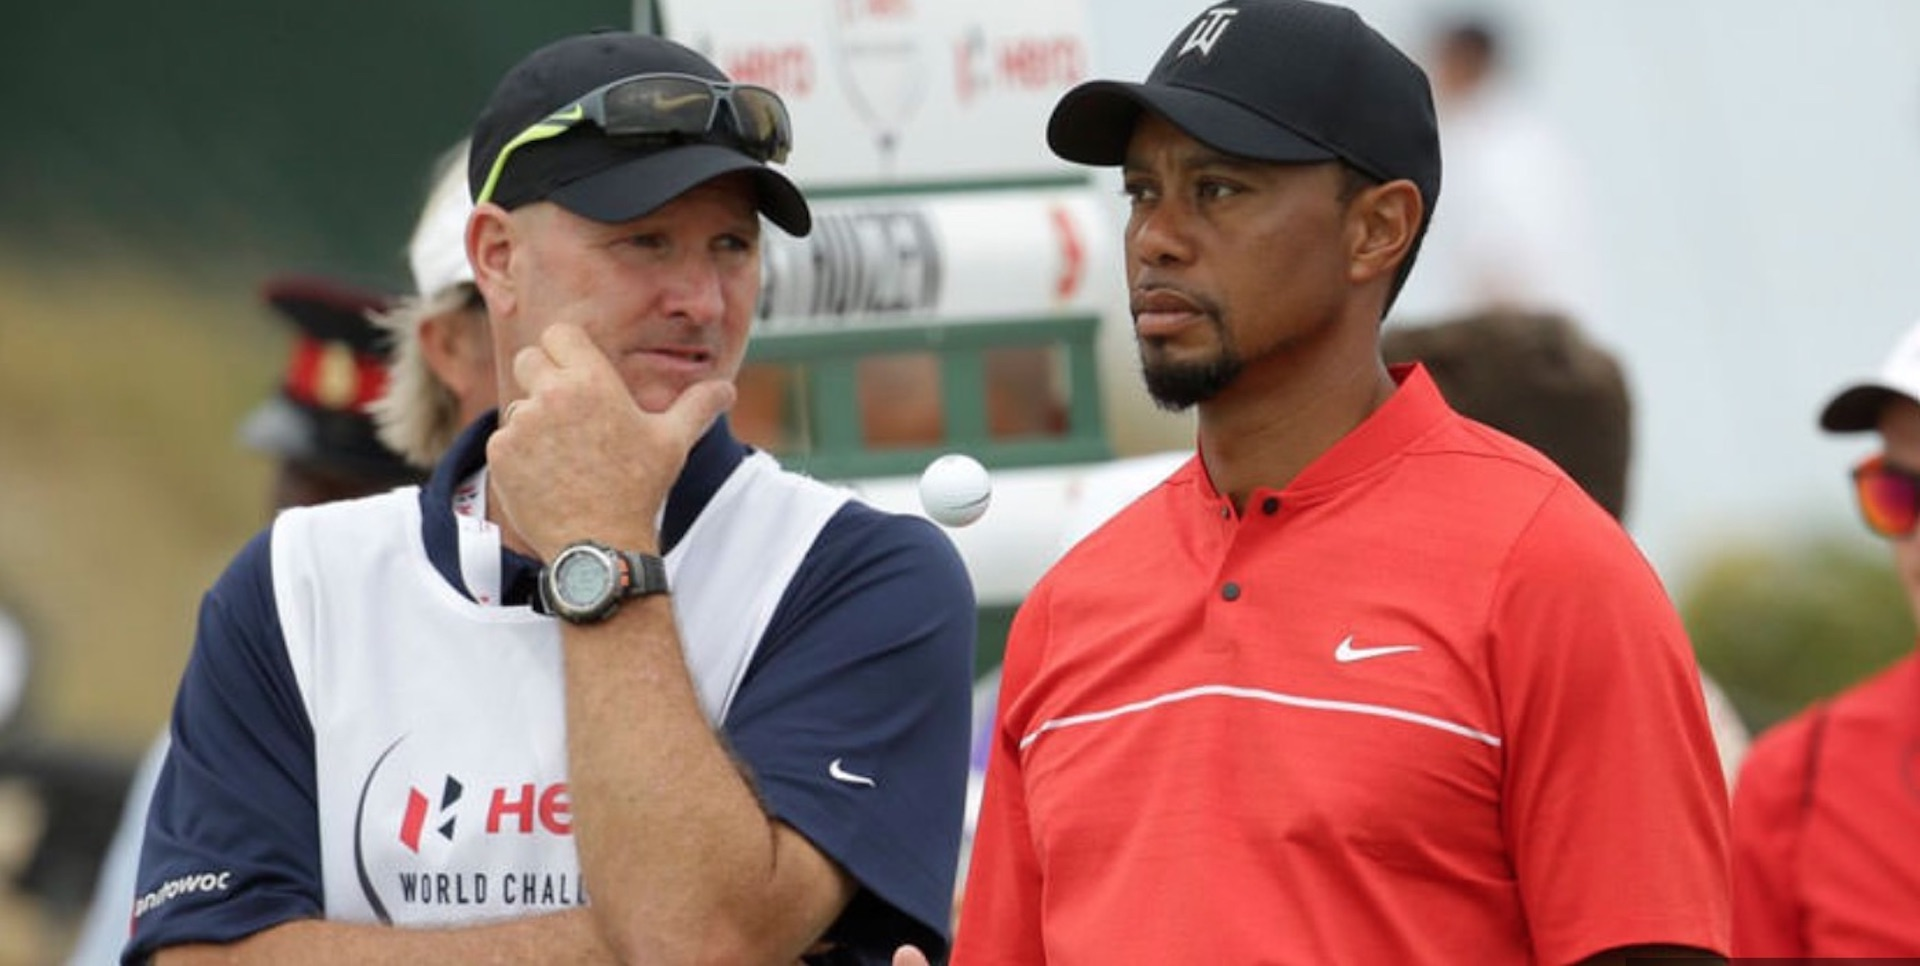 Jack Nicklaus 'not interested' in return of Tiger Woods